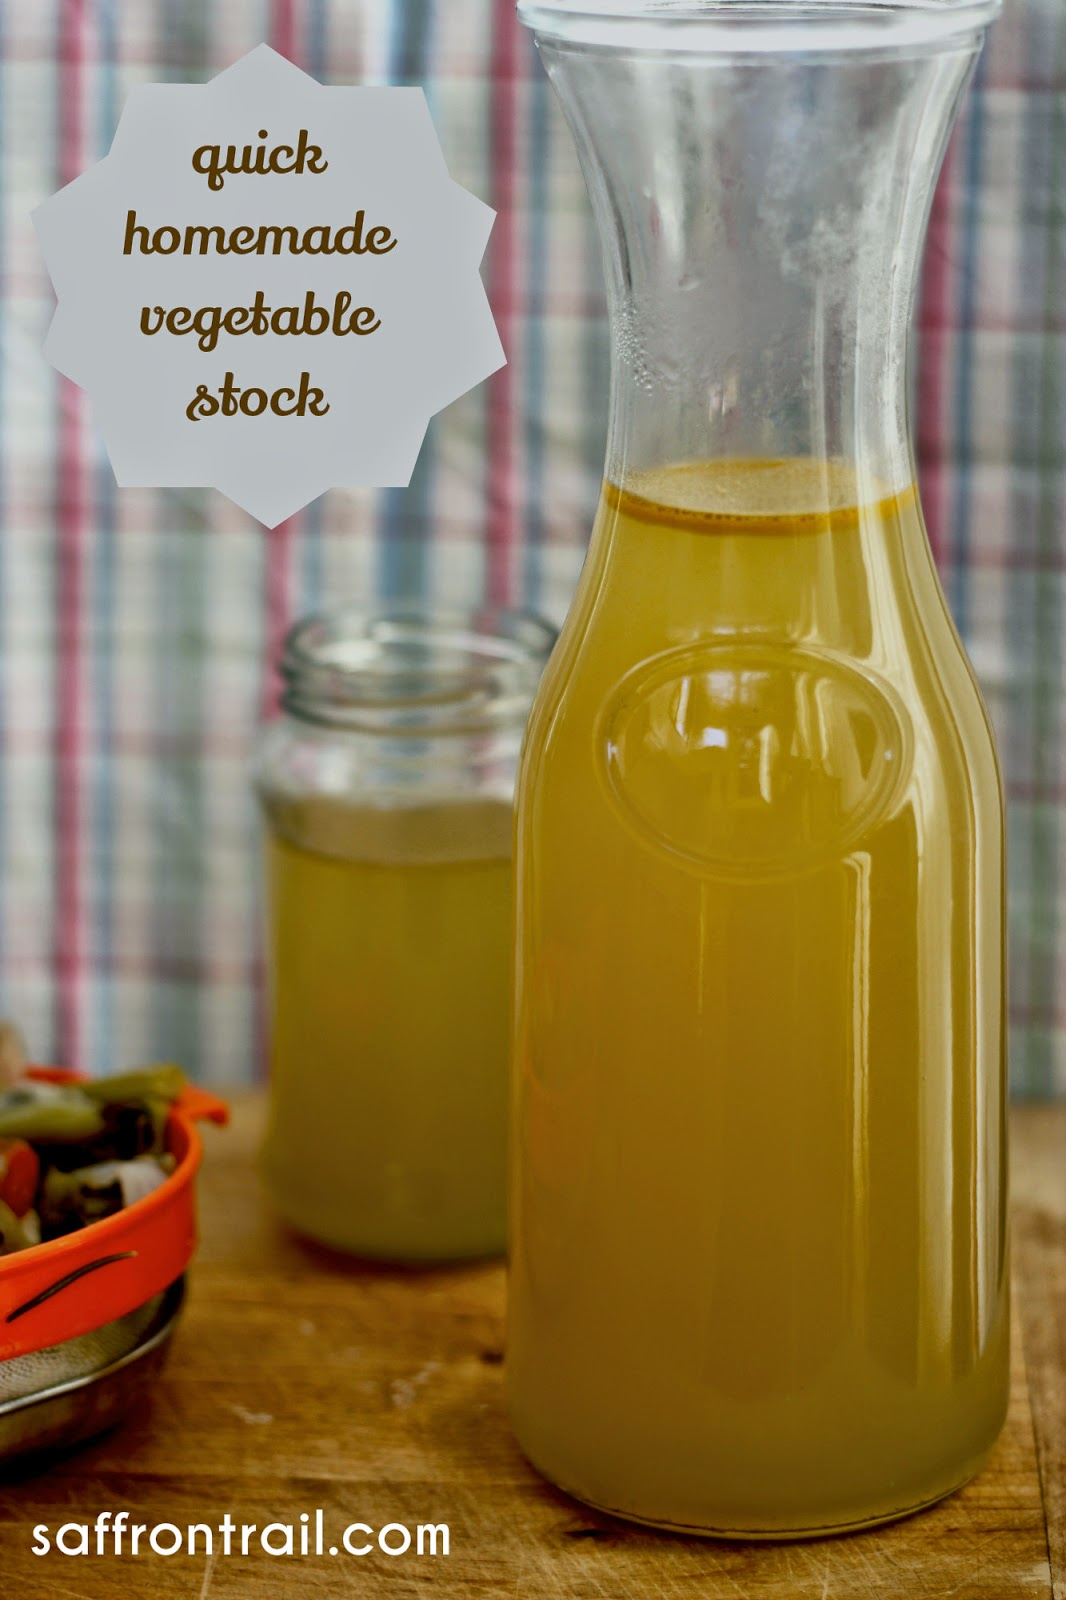 How To Make Vegetable Stock in Under 30 Mins - Vegetarian Stock Recipe